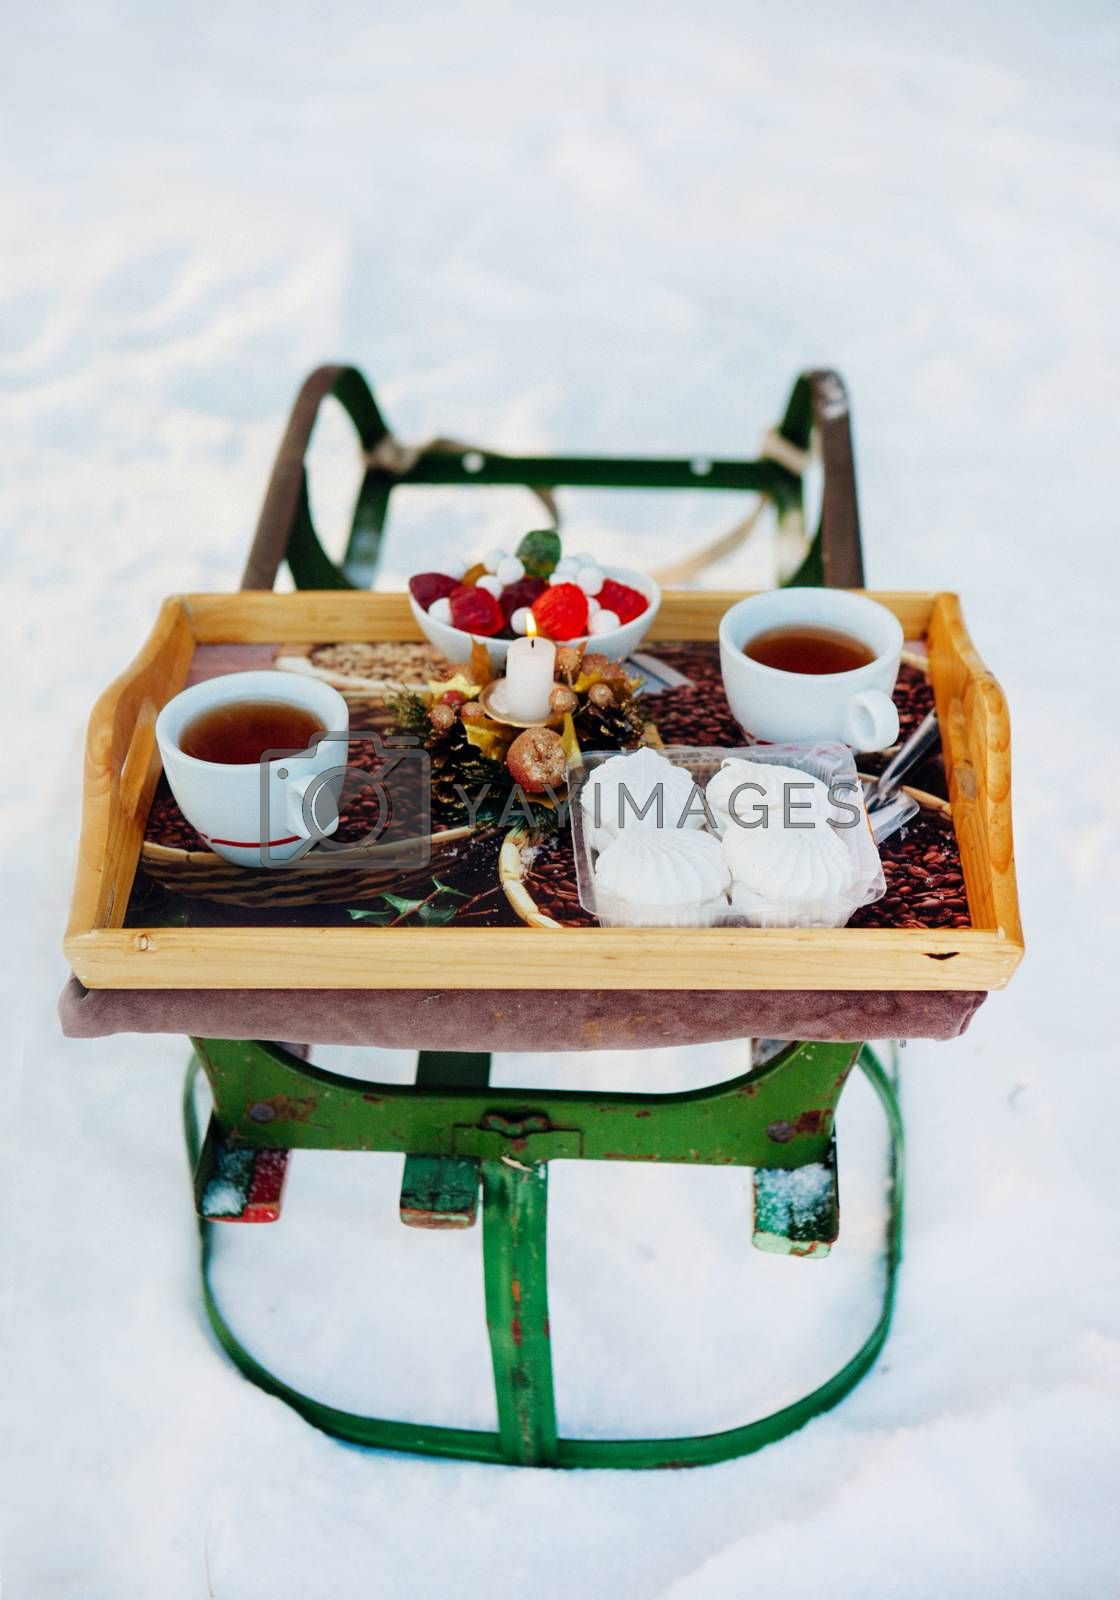 Romantic breakfast in the snow. Winter Vintage Sledge. Coffee, marshmallows, and other sweets in a compartment with a burning candle